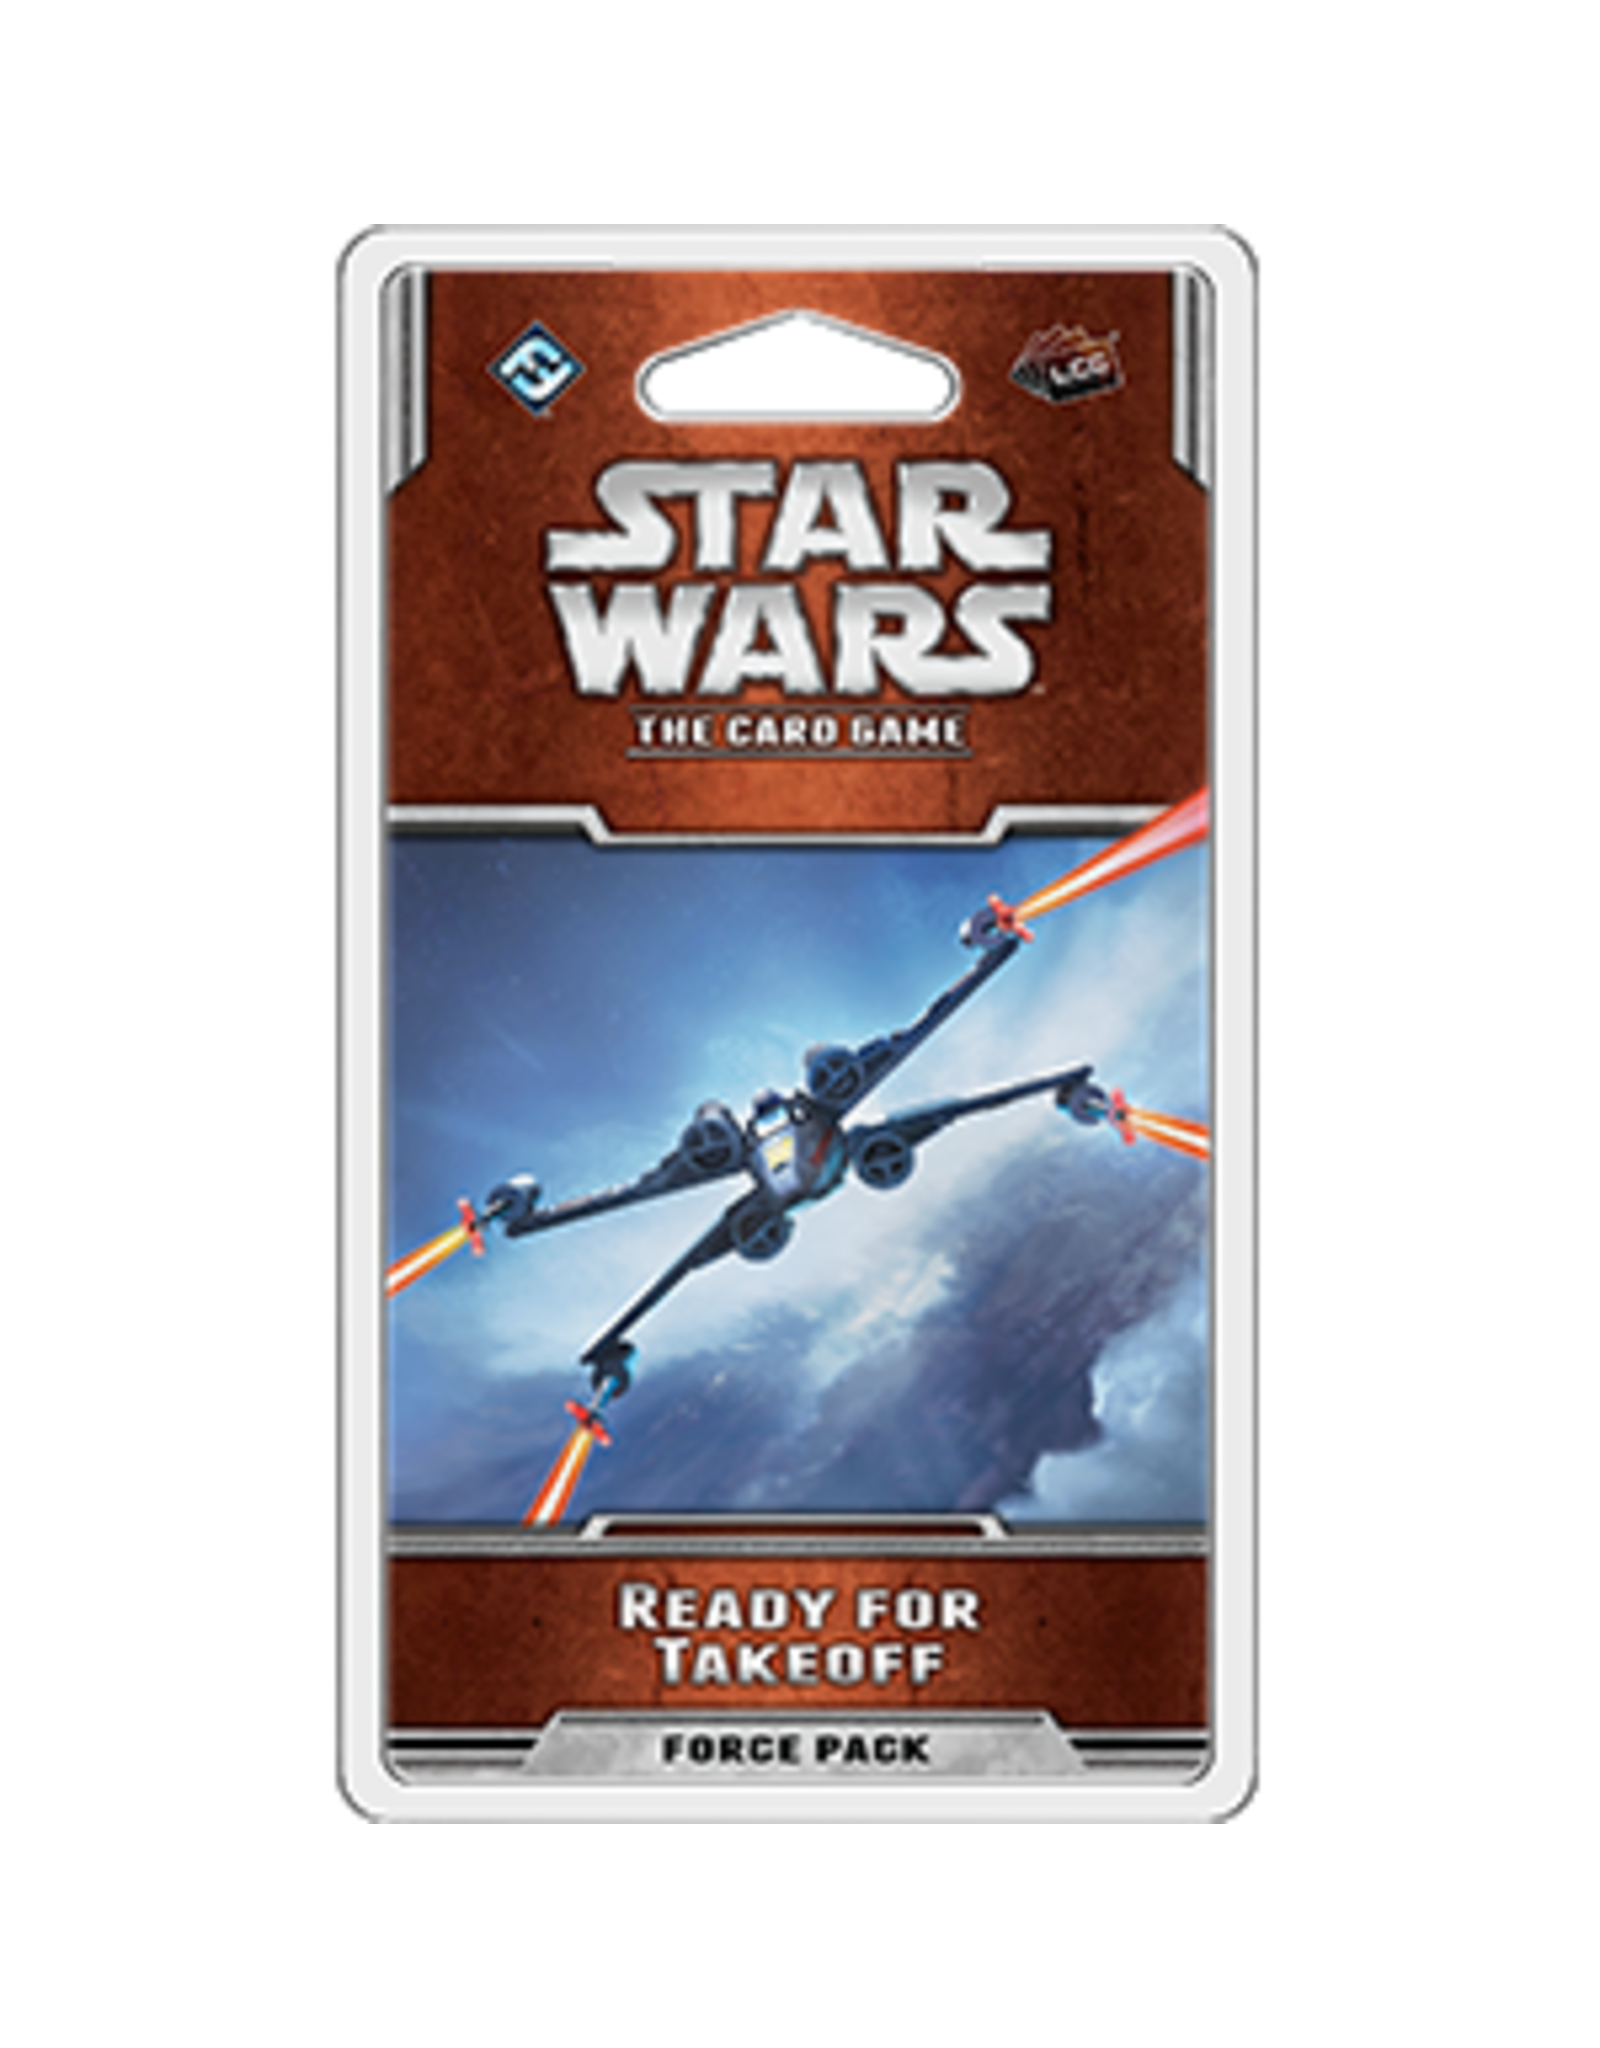 Star Wars LCG: Ready for Takeoff Force Pack